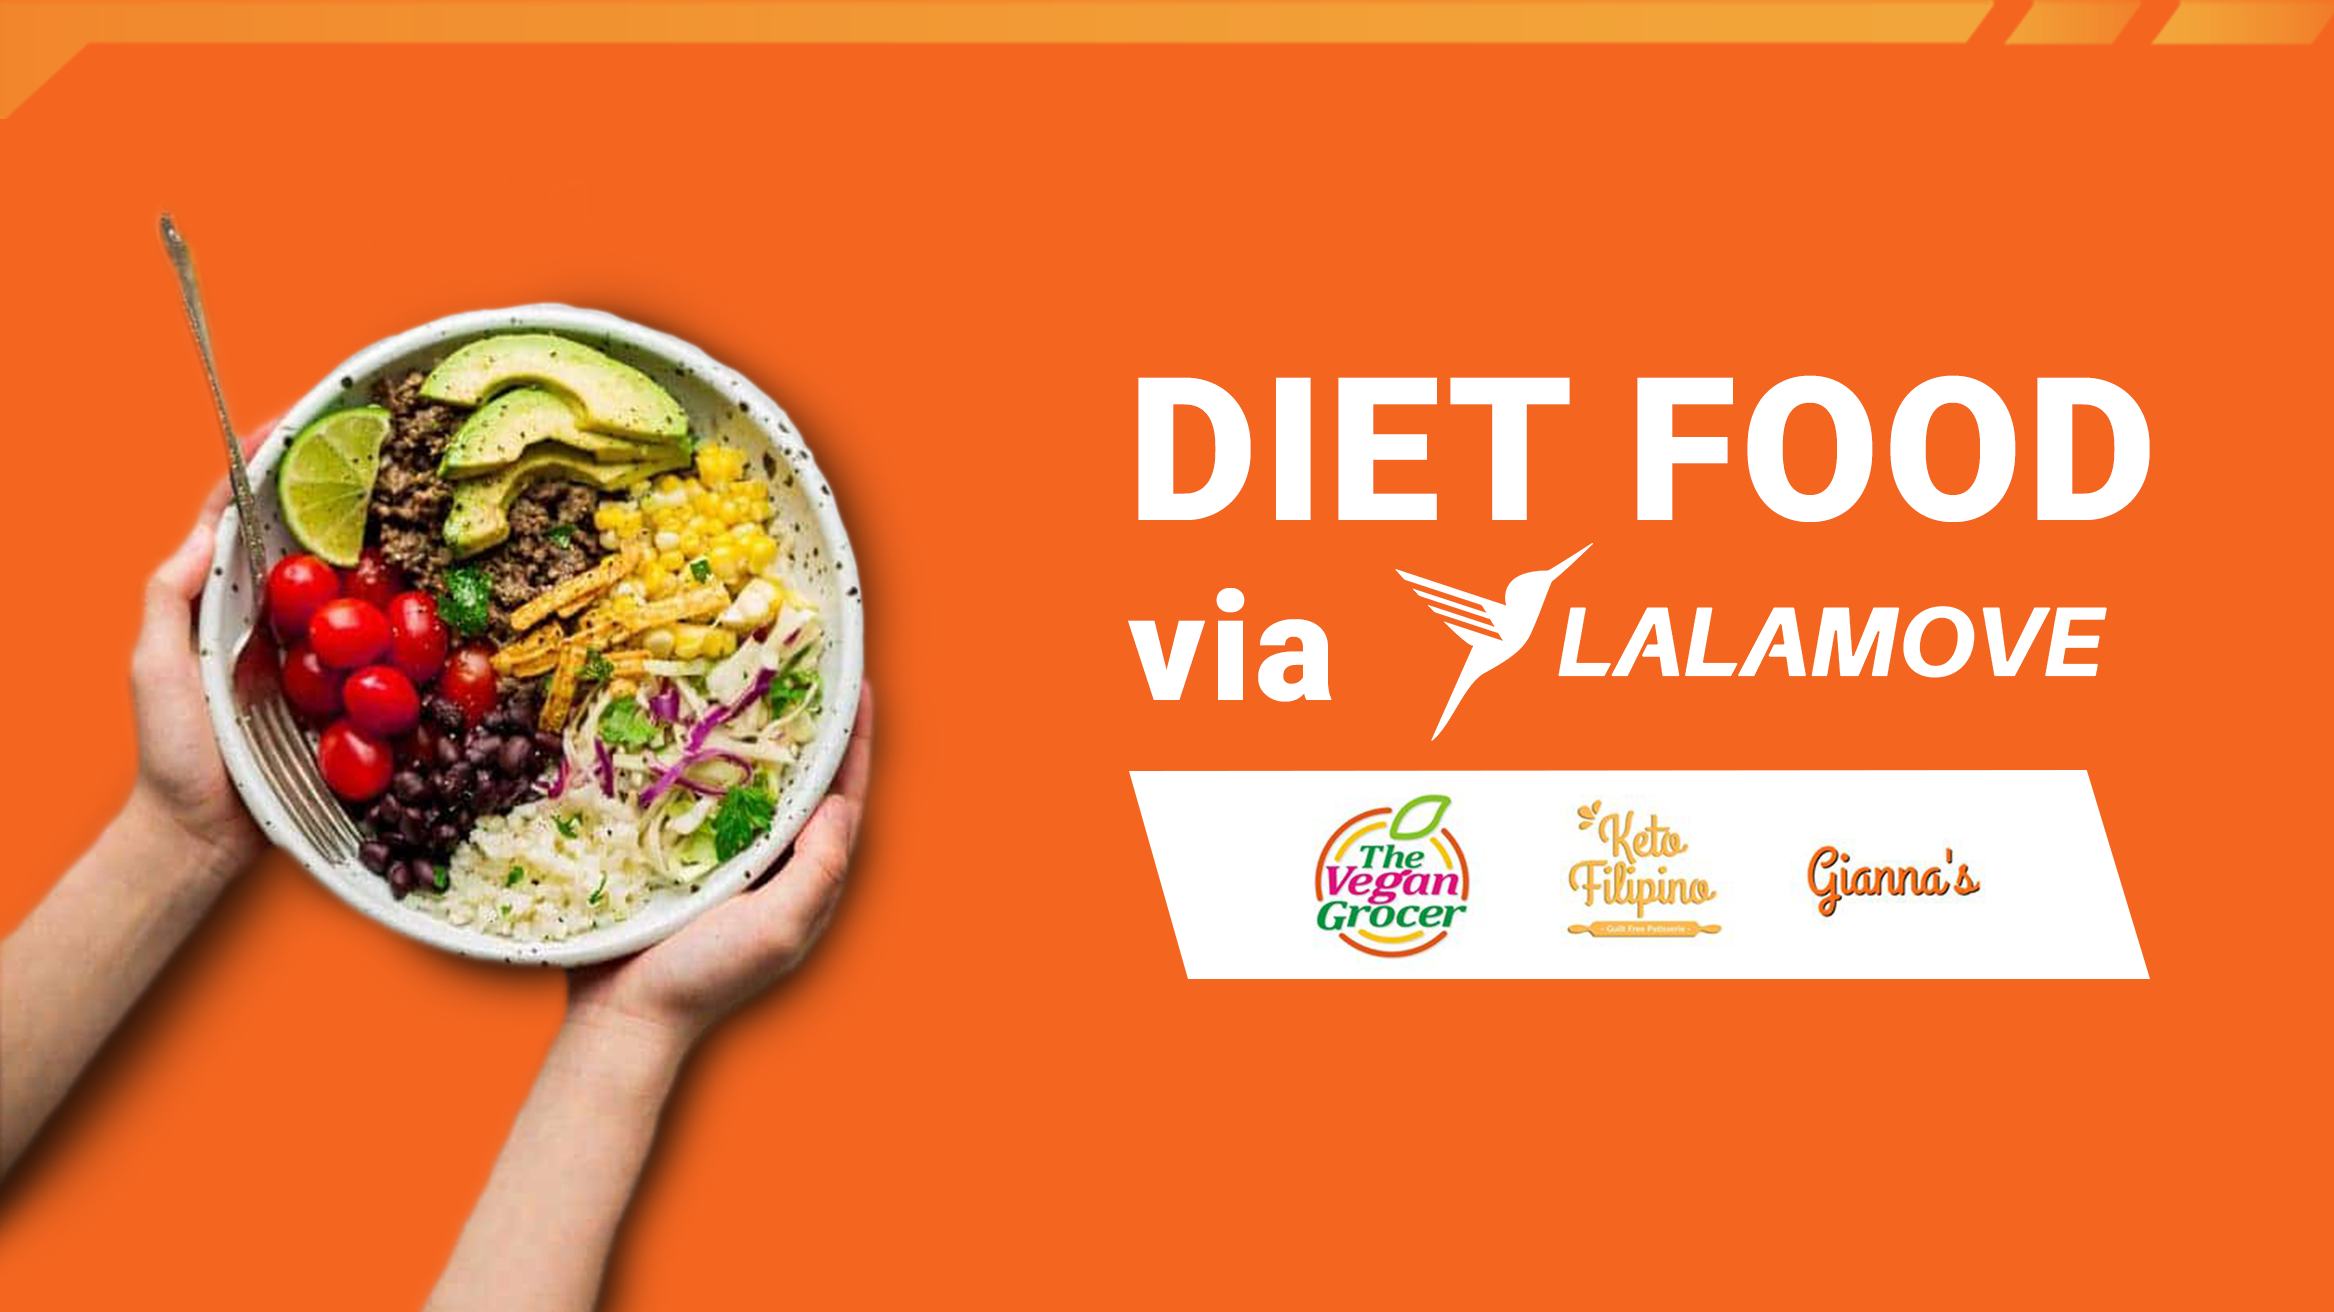 Get these Delicious Diet Food via Lalamove!